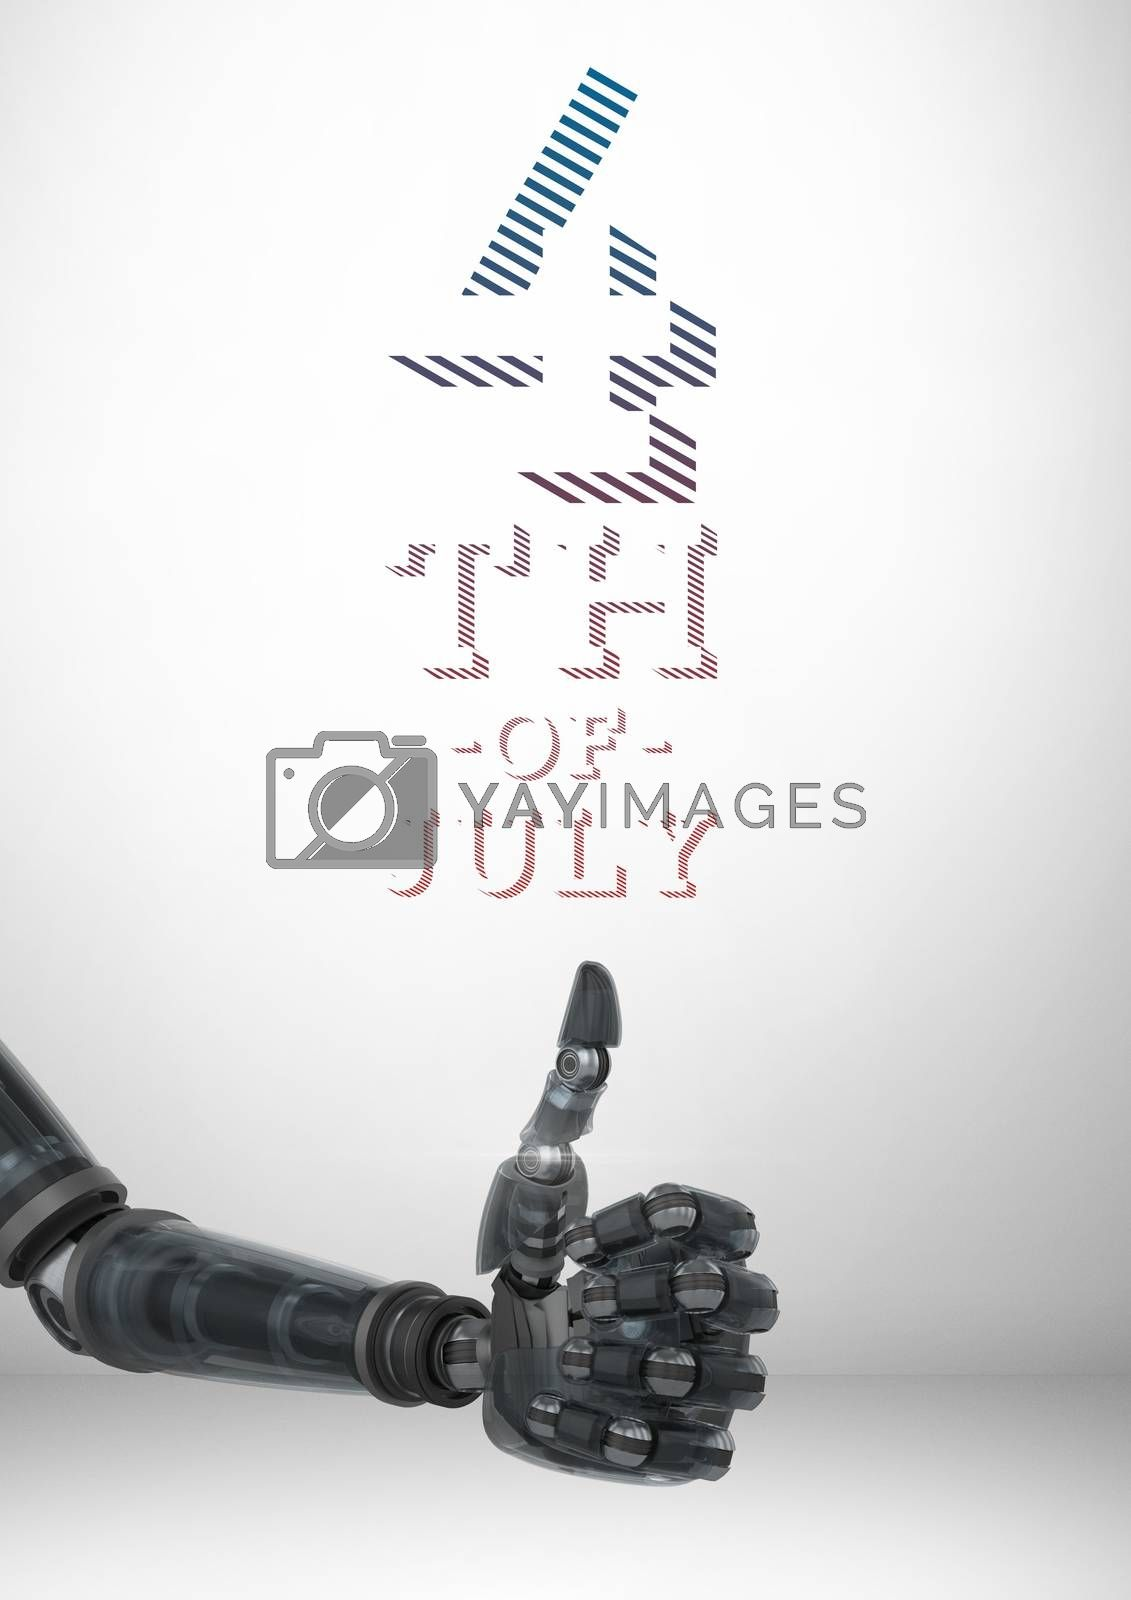 Royalty free image of Composite image of robot with thumbs up for the 4th of july by Wavebreakmedia